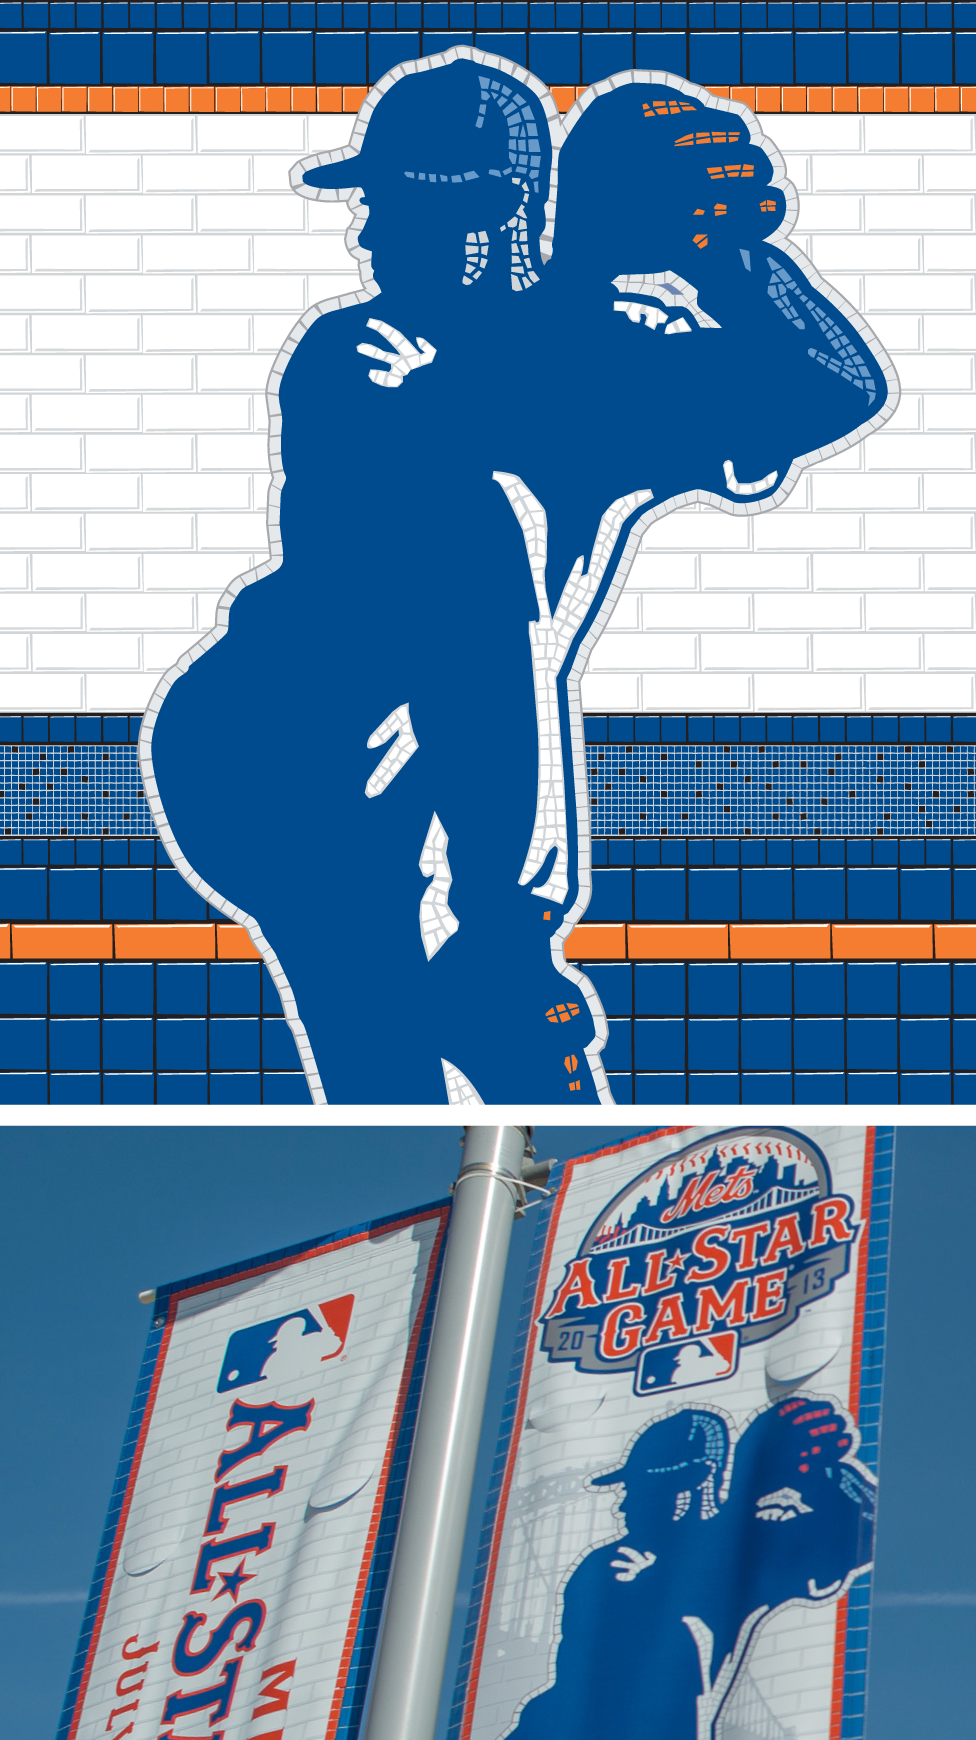 Subway tile mosaic inspired Player Art for the 2013 All-Star Game